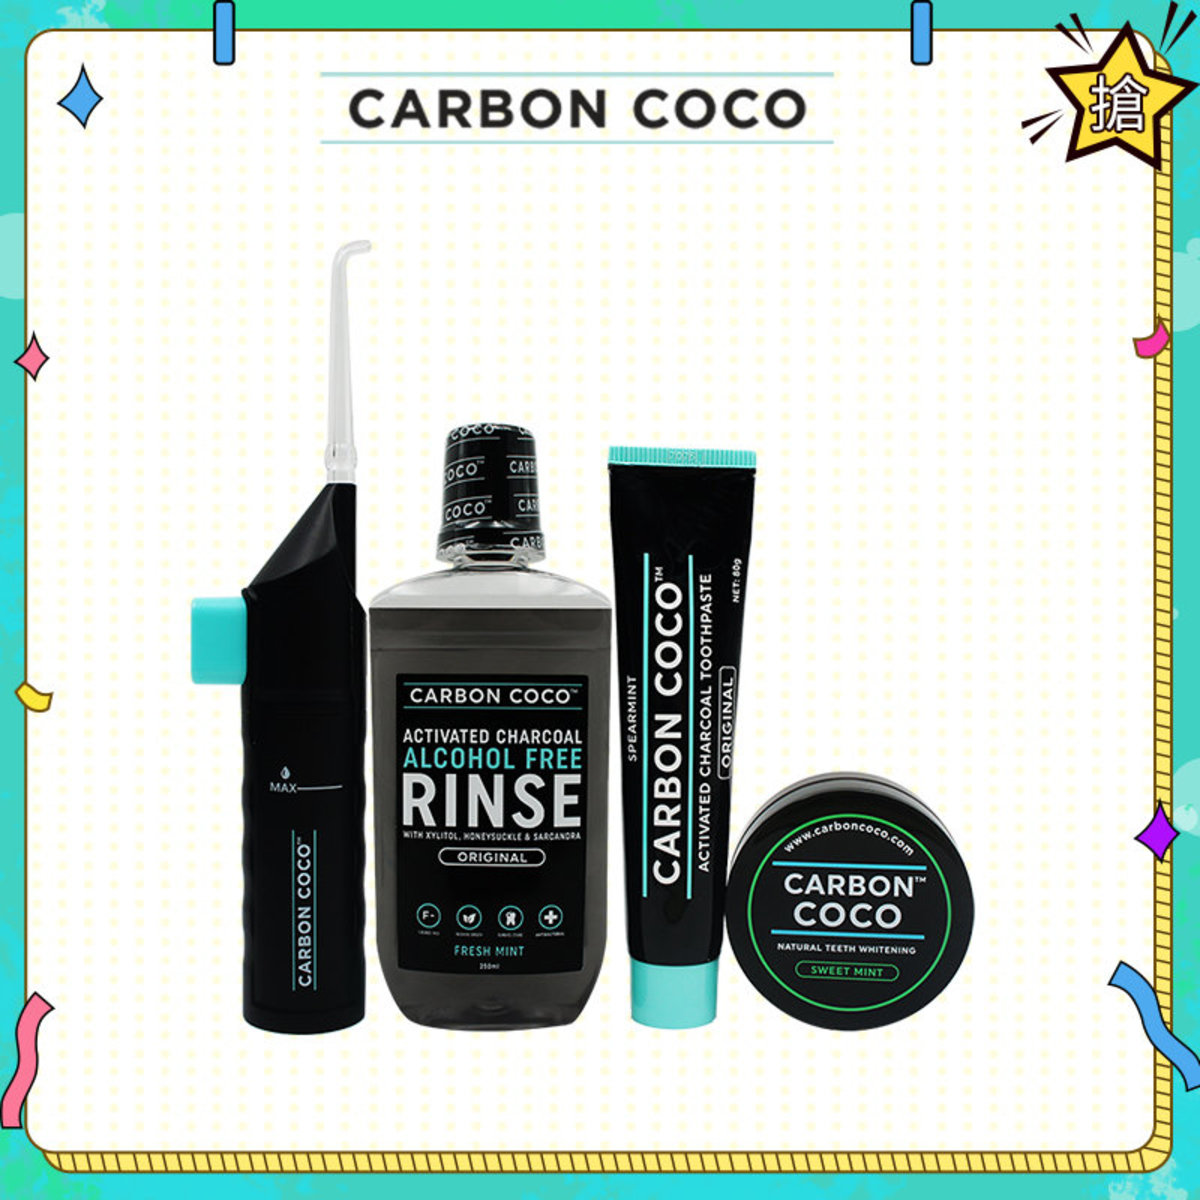 Natural Teeth Whitening(Sweet Mint)+Toothpaste+Carbon aqua flosser+alcohol free rinse set